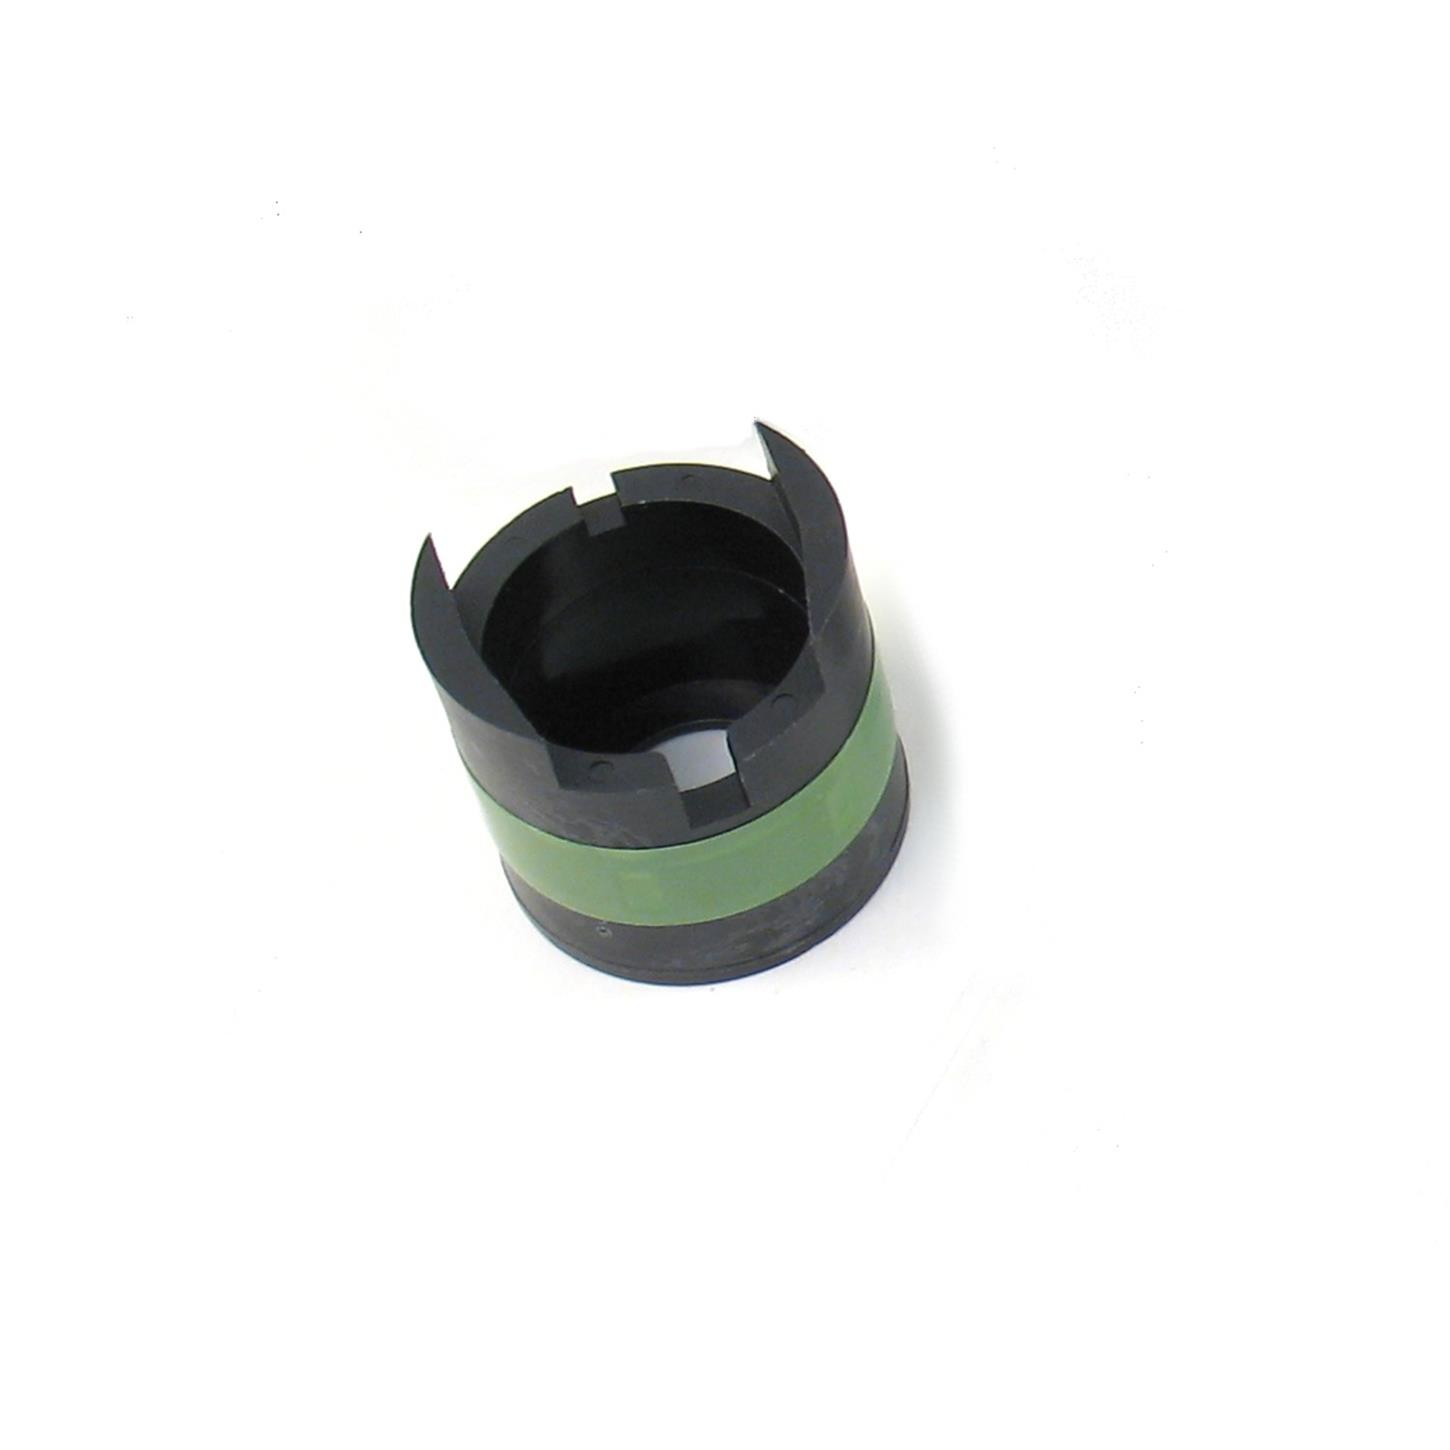 PerTronix 1381A3 Magnet Sleeve For 1381A